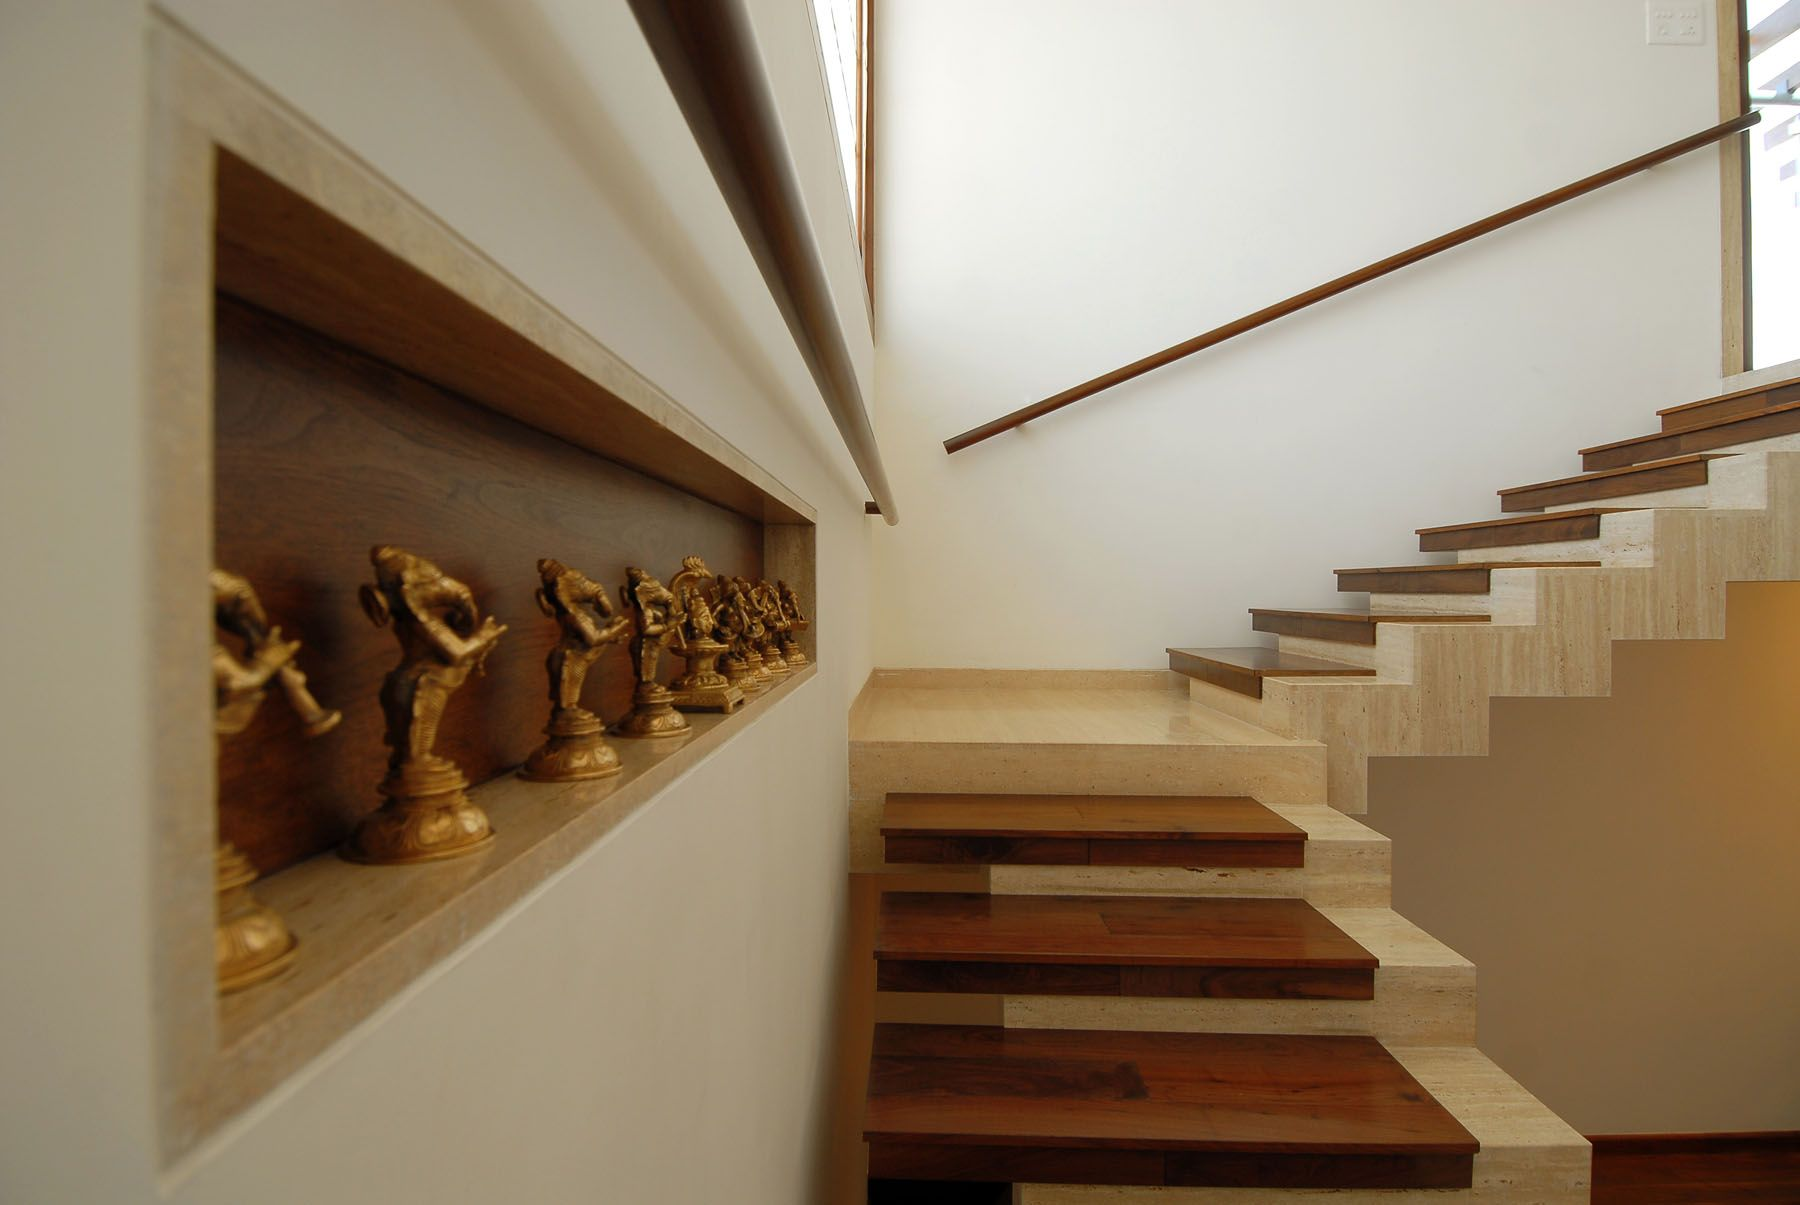 Duplex house interior design stairs pinned by for Duplex house designs interior